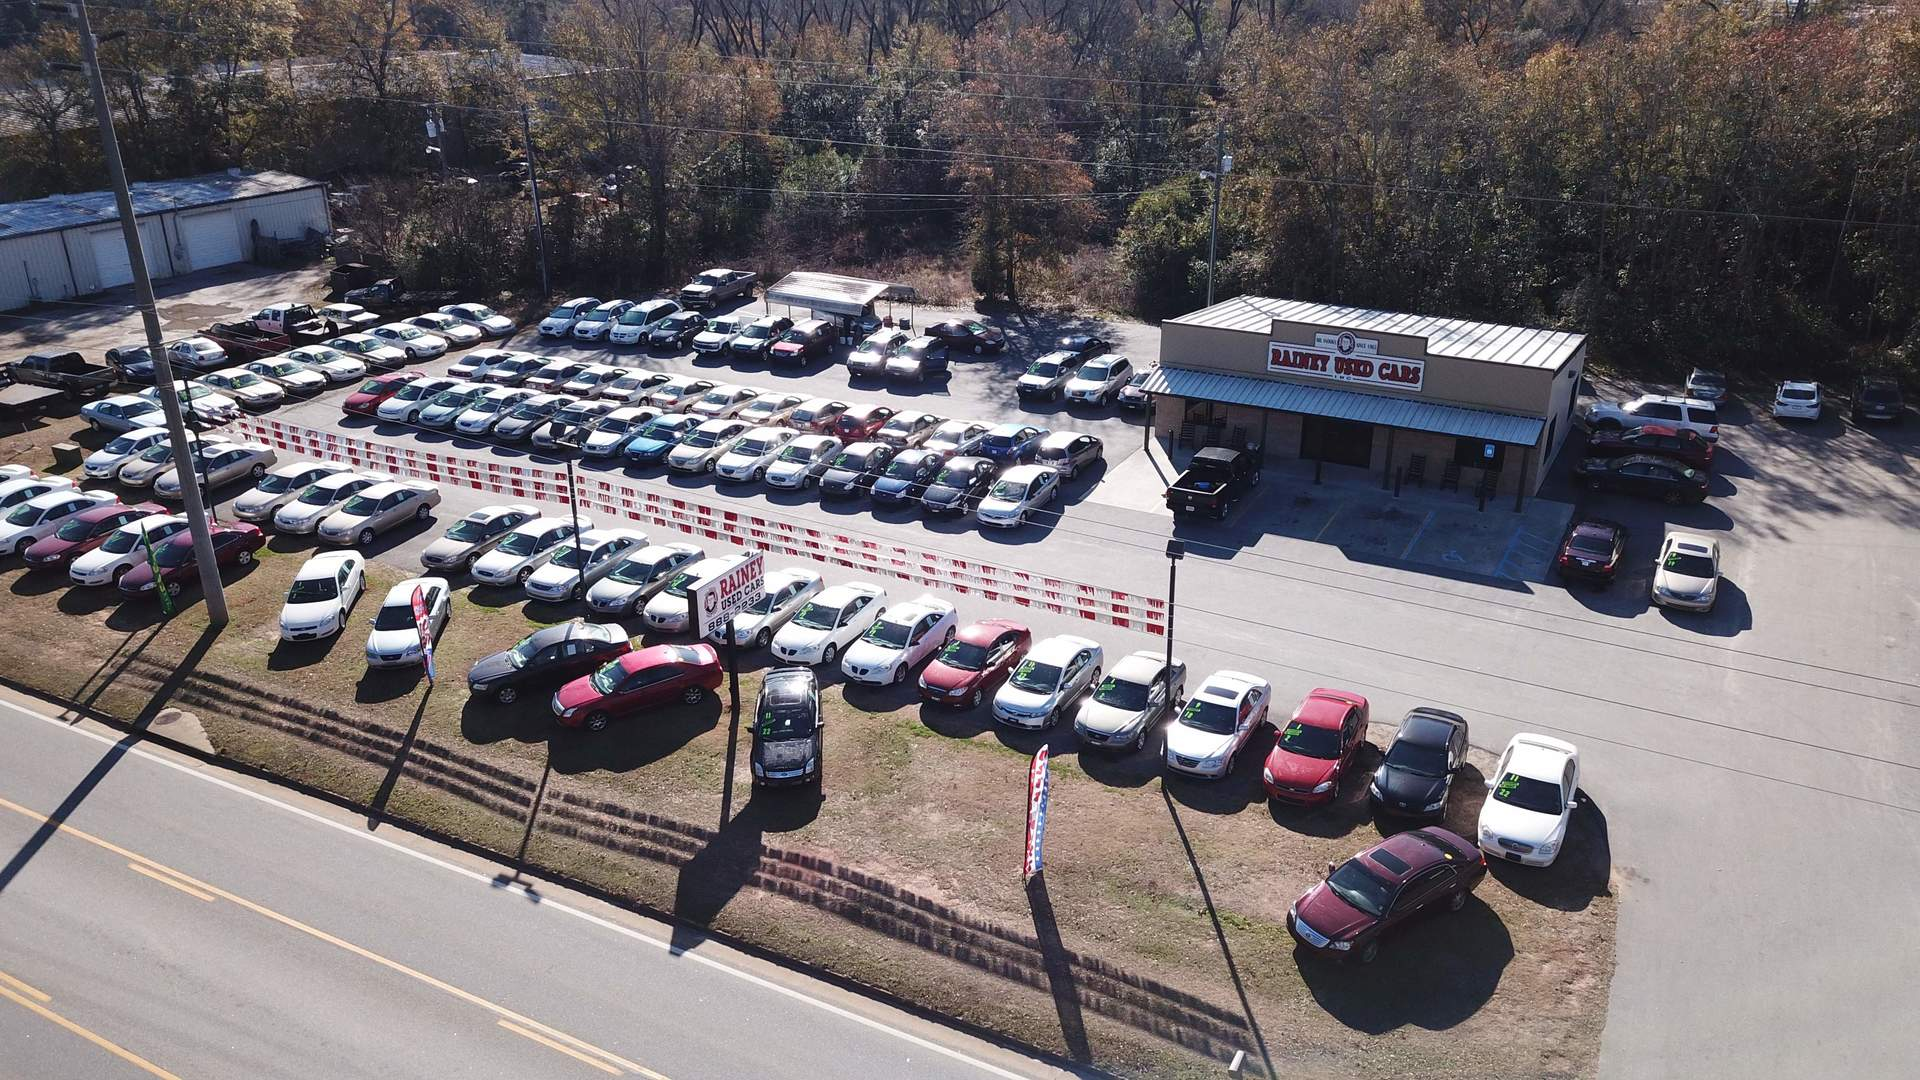 albany lot aerial